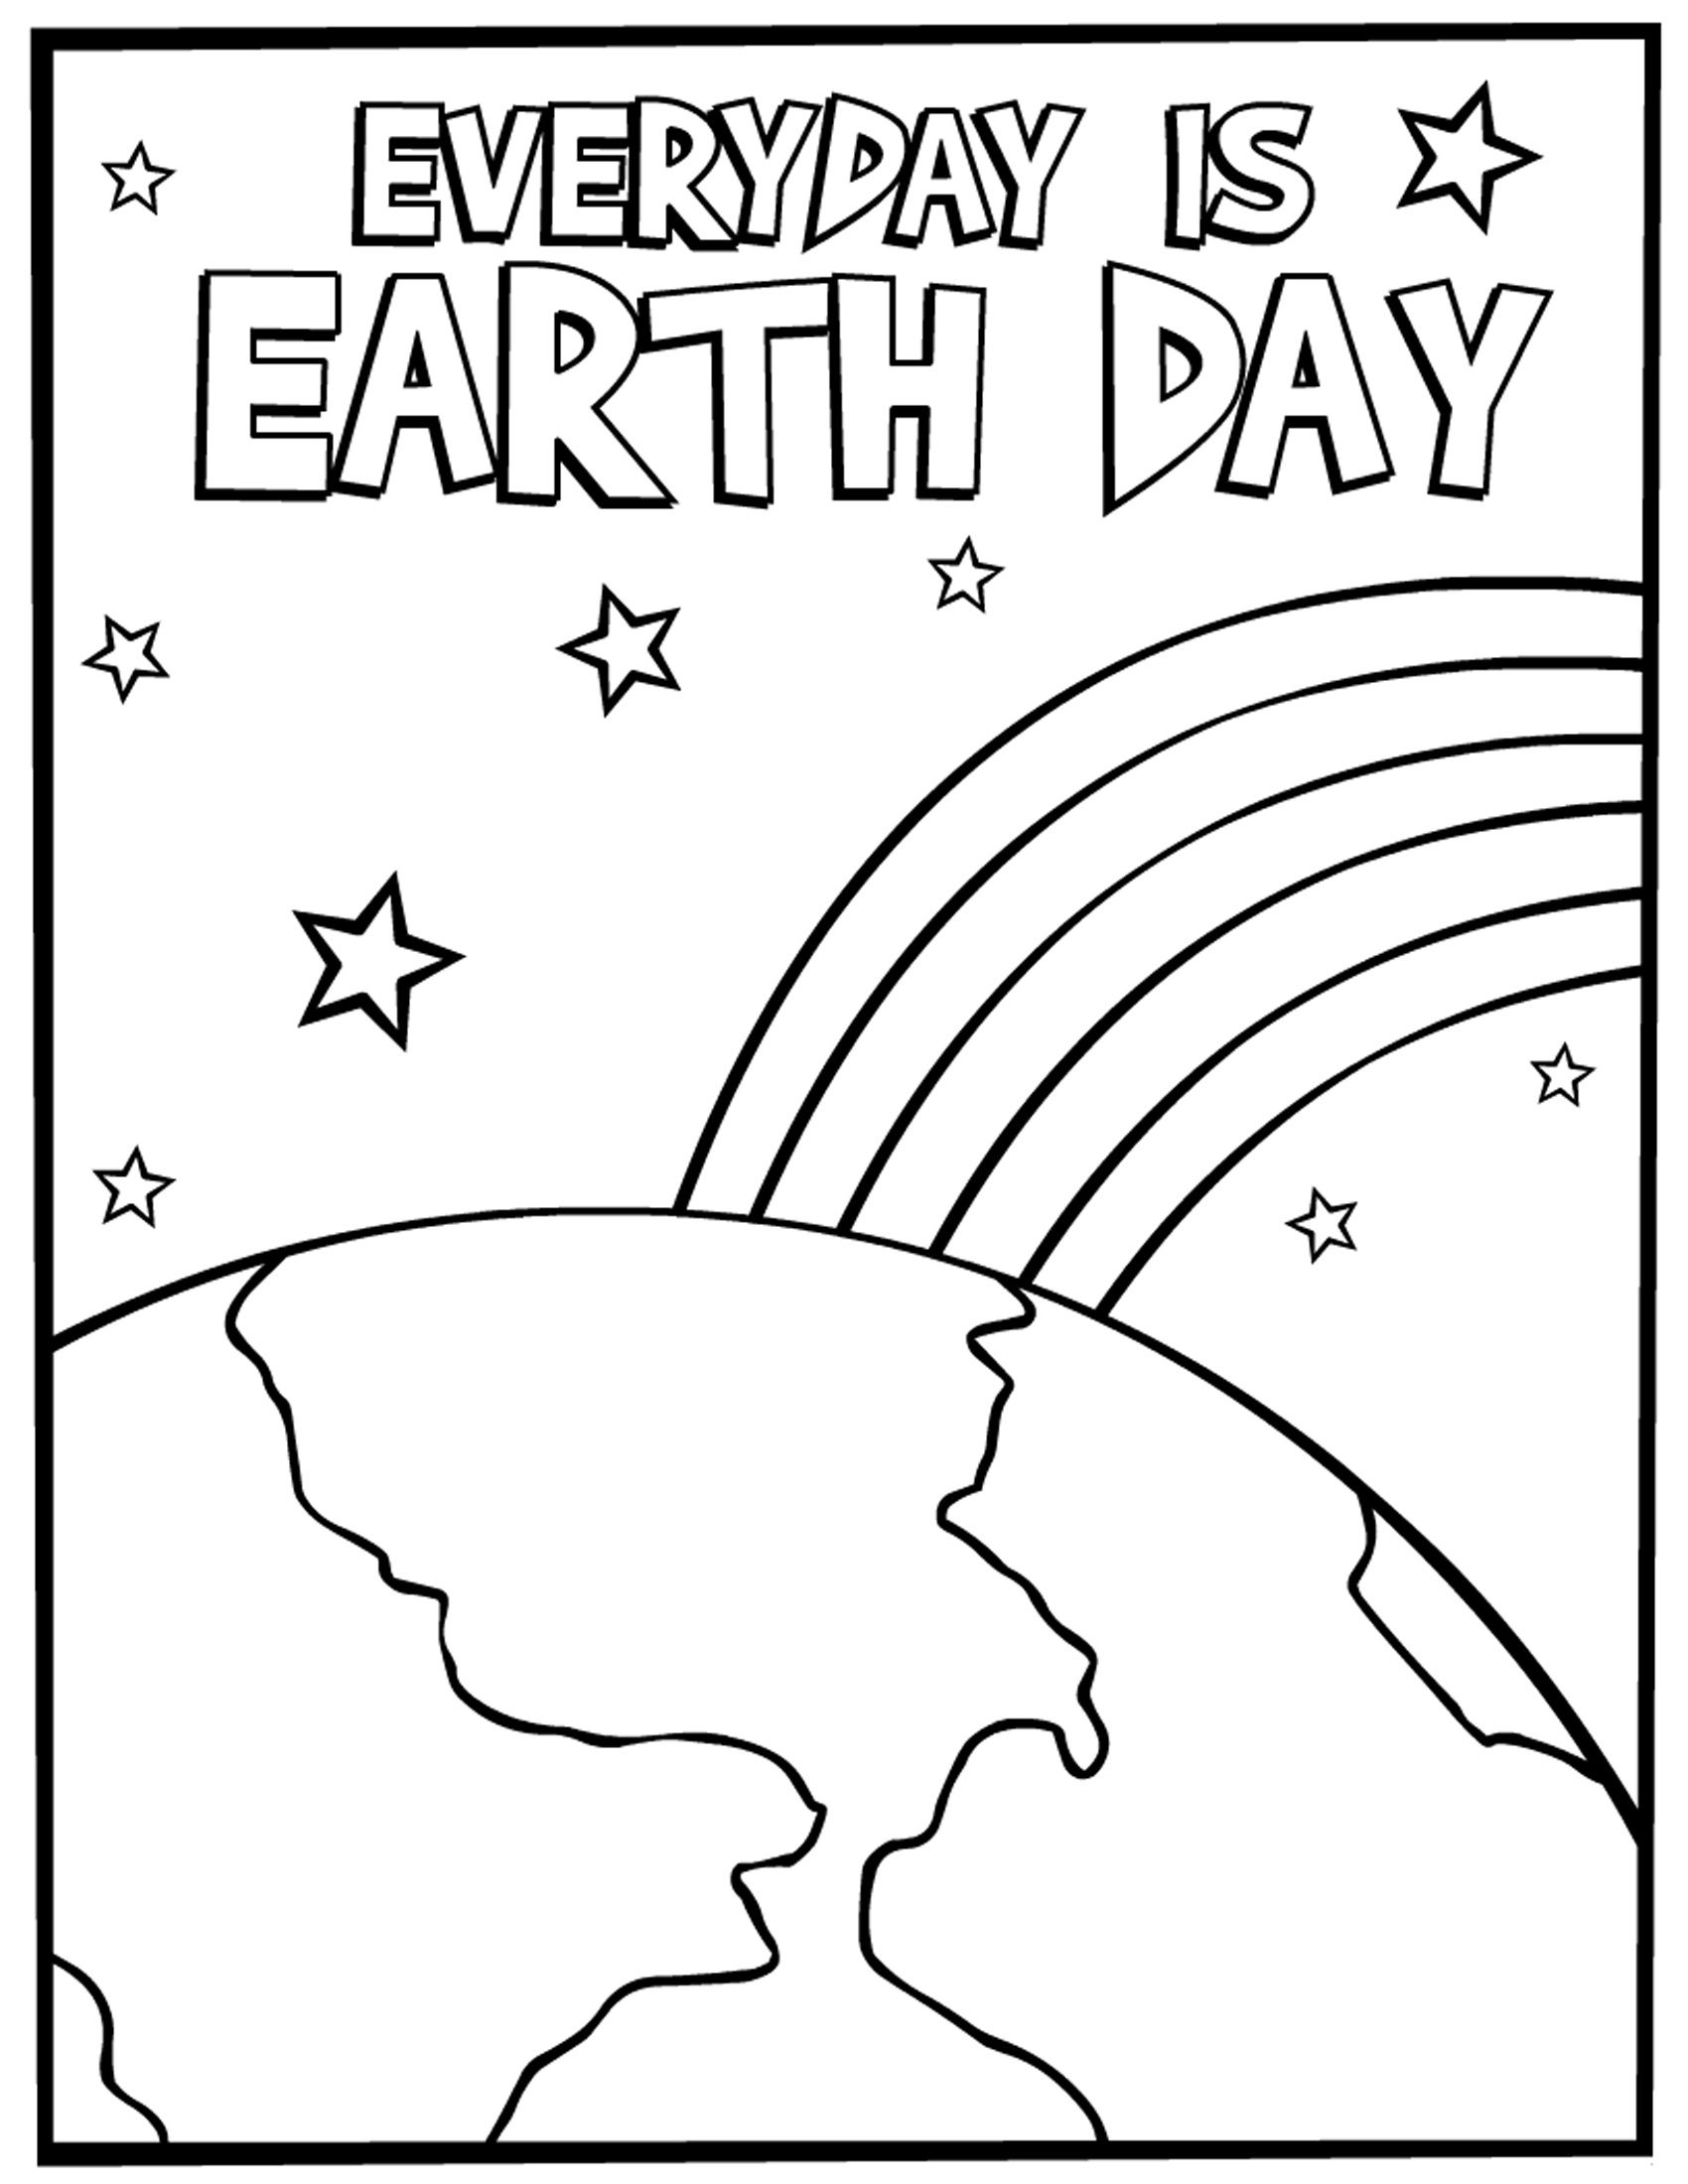 Earth Day Coloring Pages Earth Day Worksheets Earth Coloring Pages Earth Day Coloring Pages